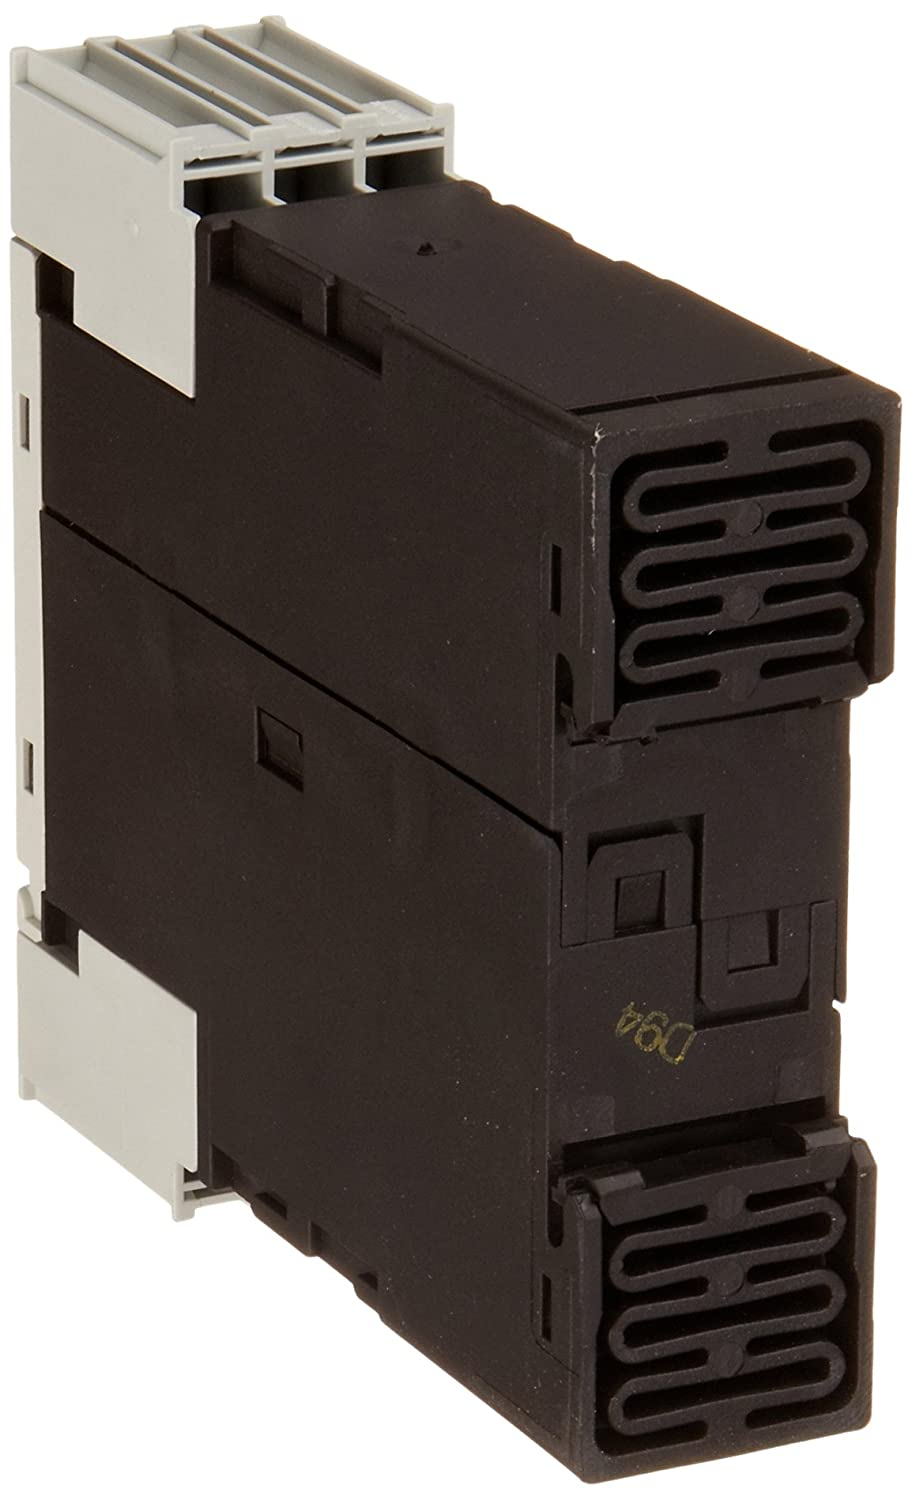 1 CO Contact Elements Industrial Housing AC//DC 24 200-240VAC Control Supply Voltage 0.05s-100h Time Range 22.5mm Siemens 3RP1555-1AP30 Solid State Time Relay Screw Terminal Clock-Pulse Relay Function